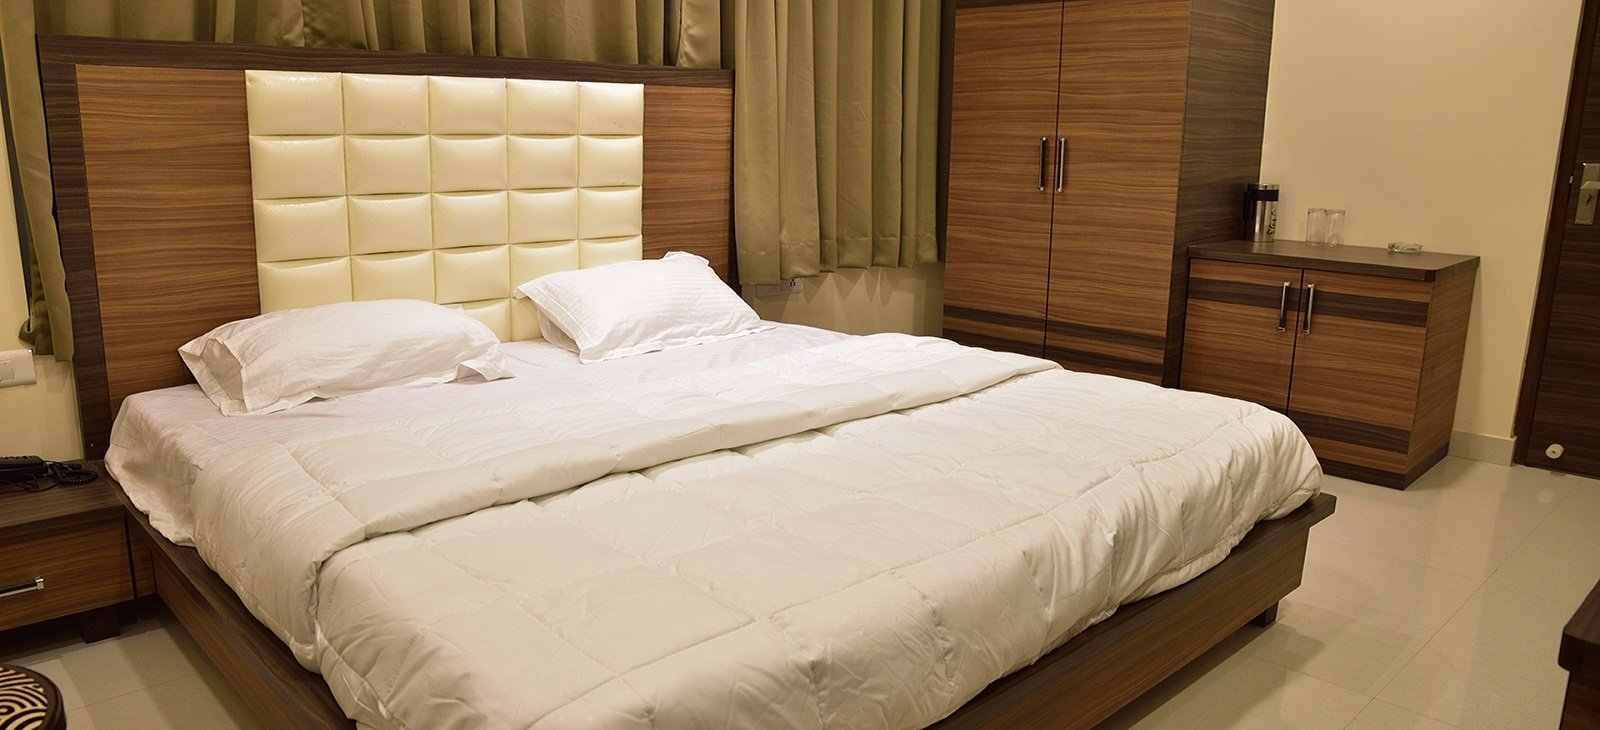 budget hotels in gorakhpur near golghar